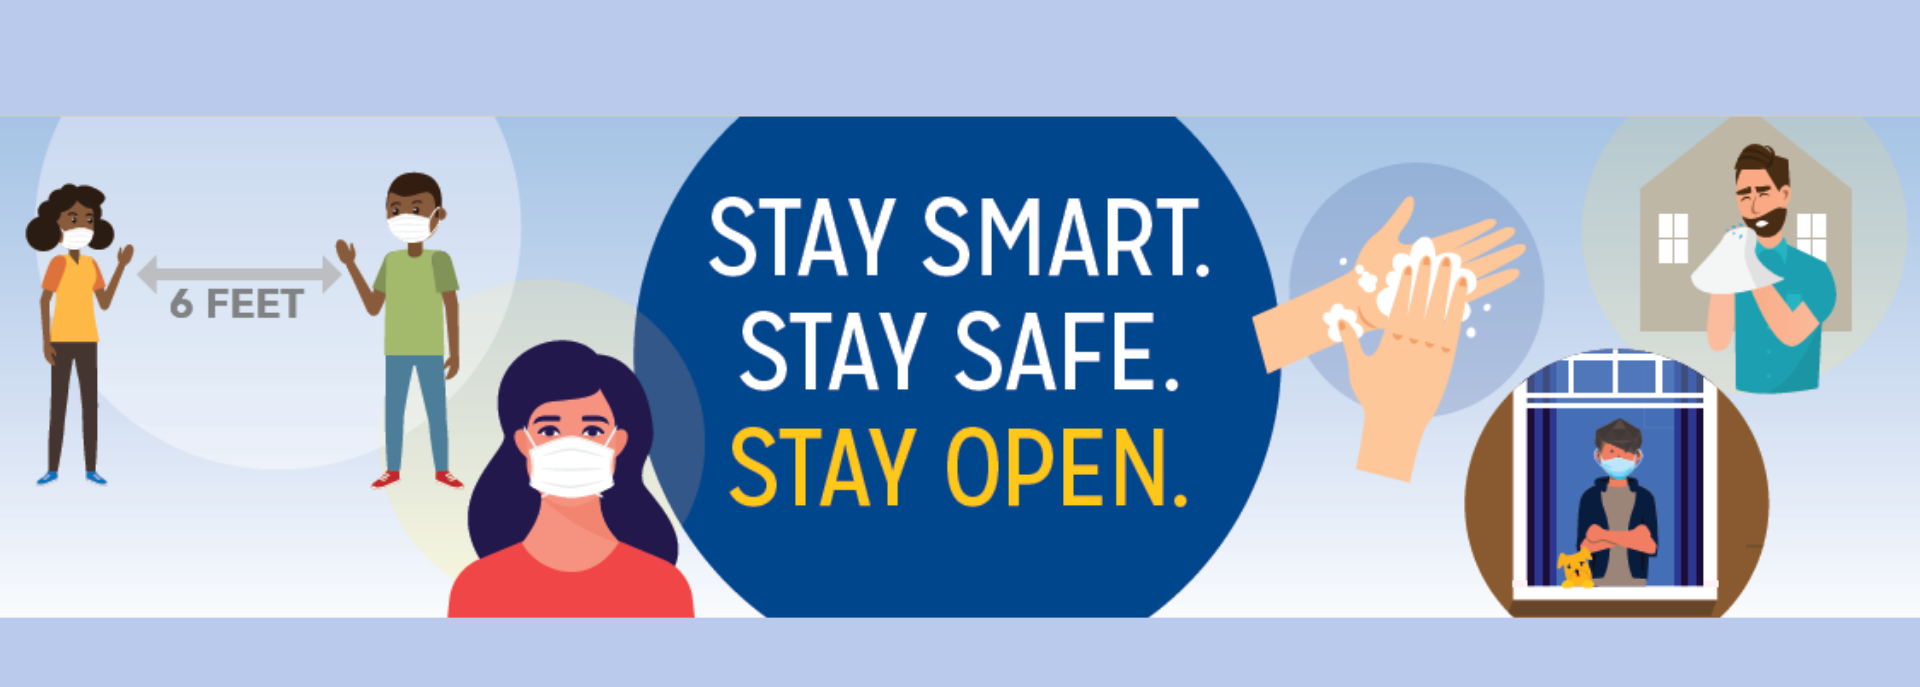 Stay Smart, Safe and Open